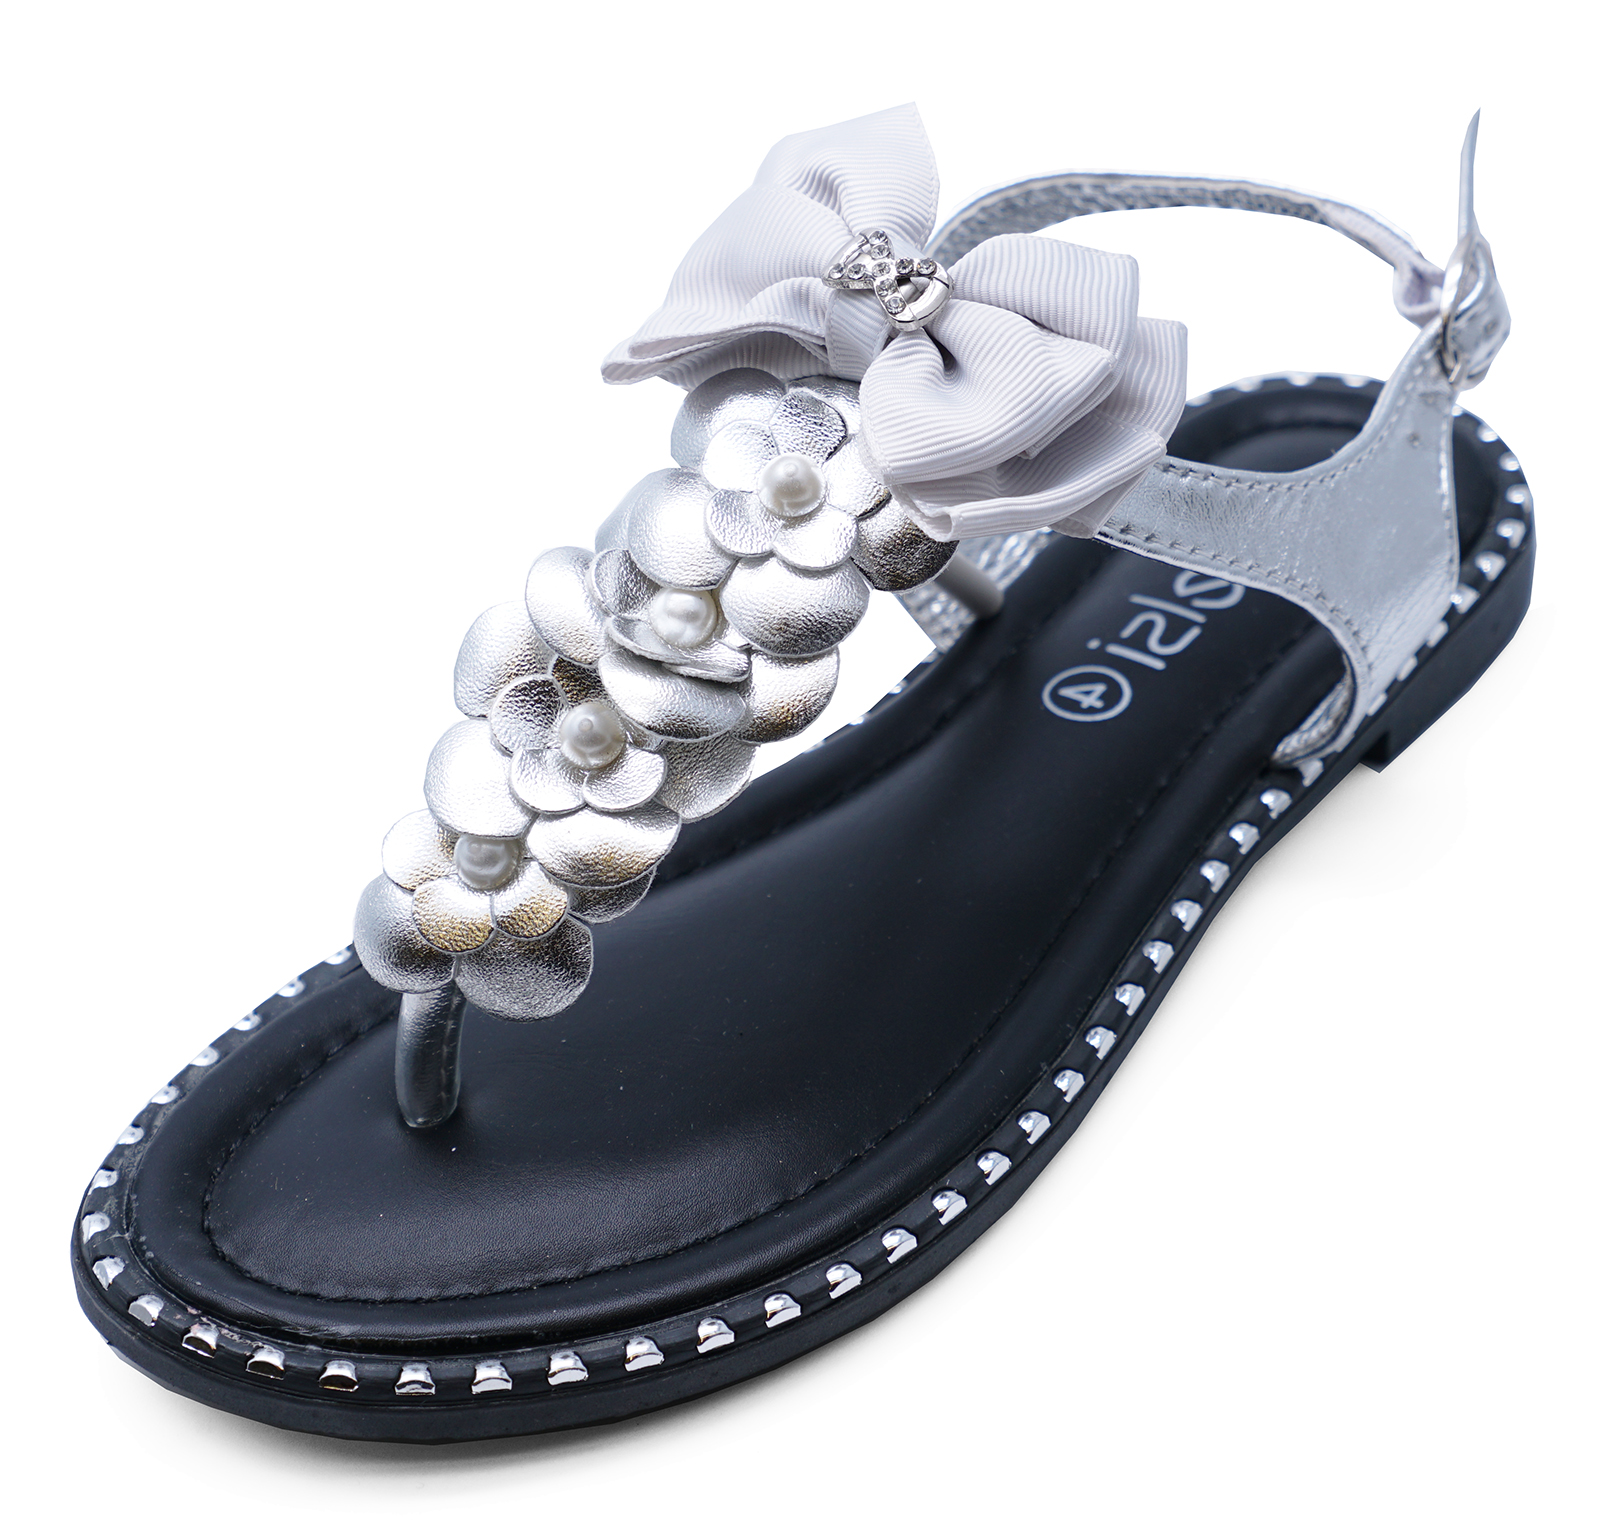 8fe9855add73c Sentinel LADIES SILVER T-BAR FLAT FLOWER FLIP-FLOP COMFY SUMMER THONG SANDALS  SHOES 3